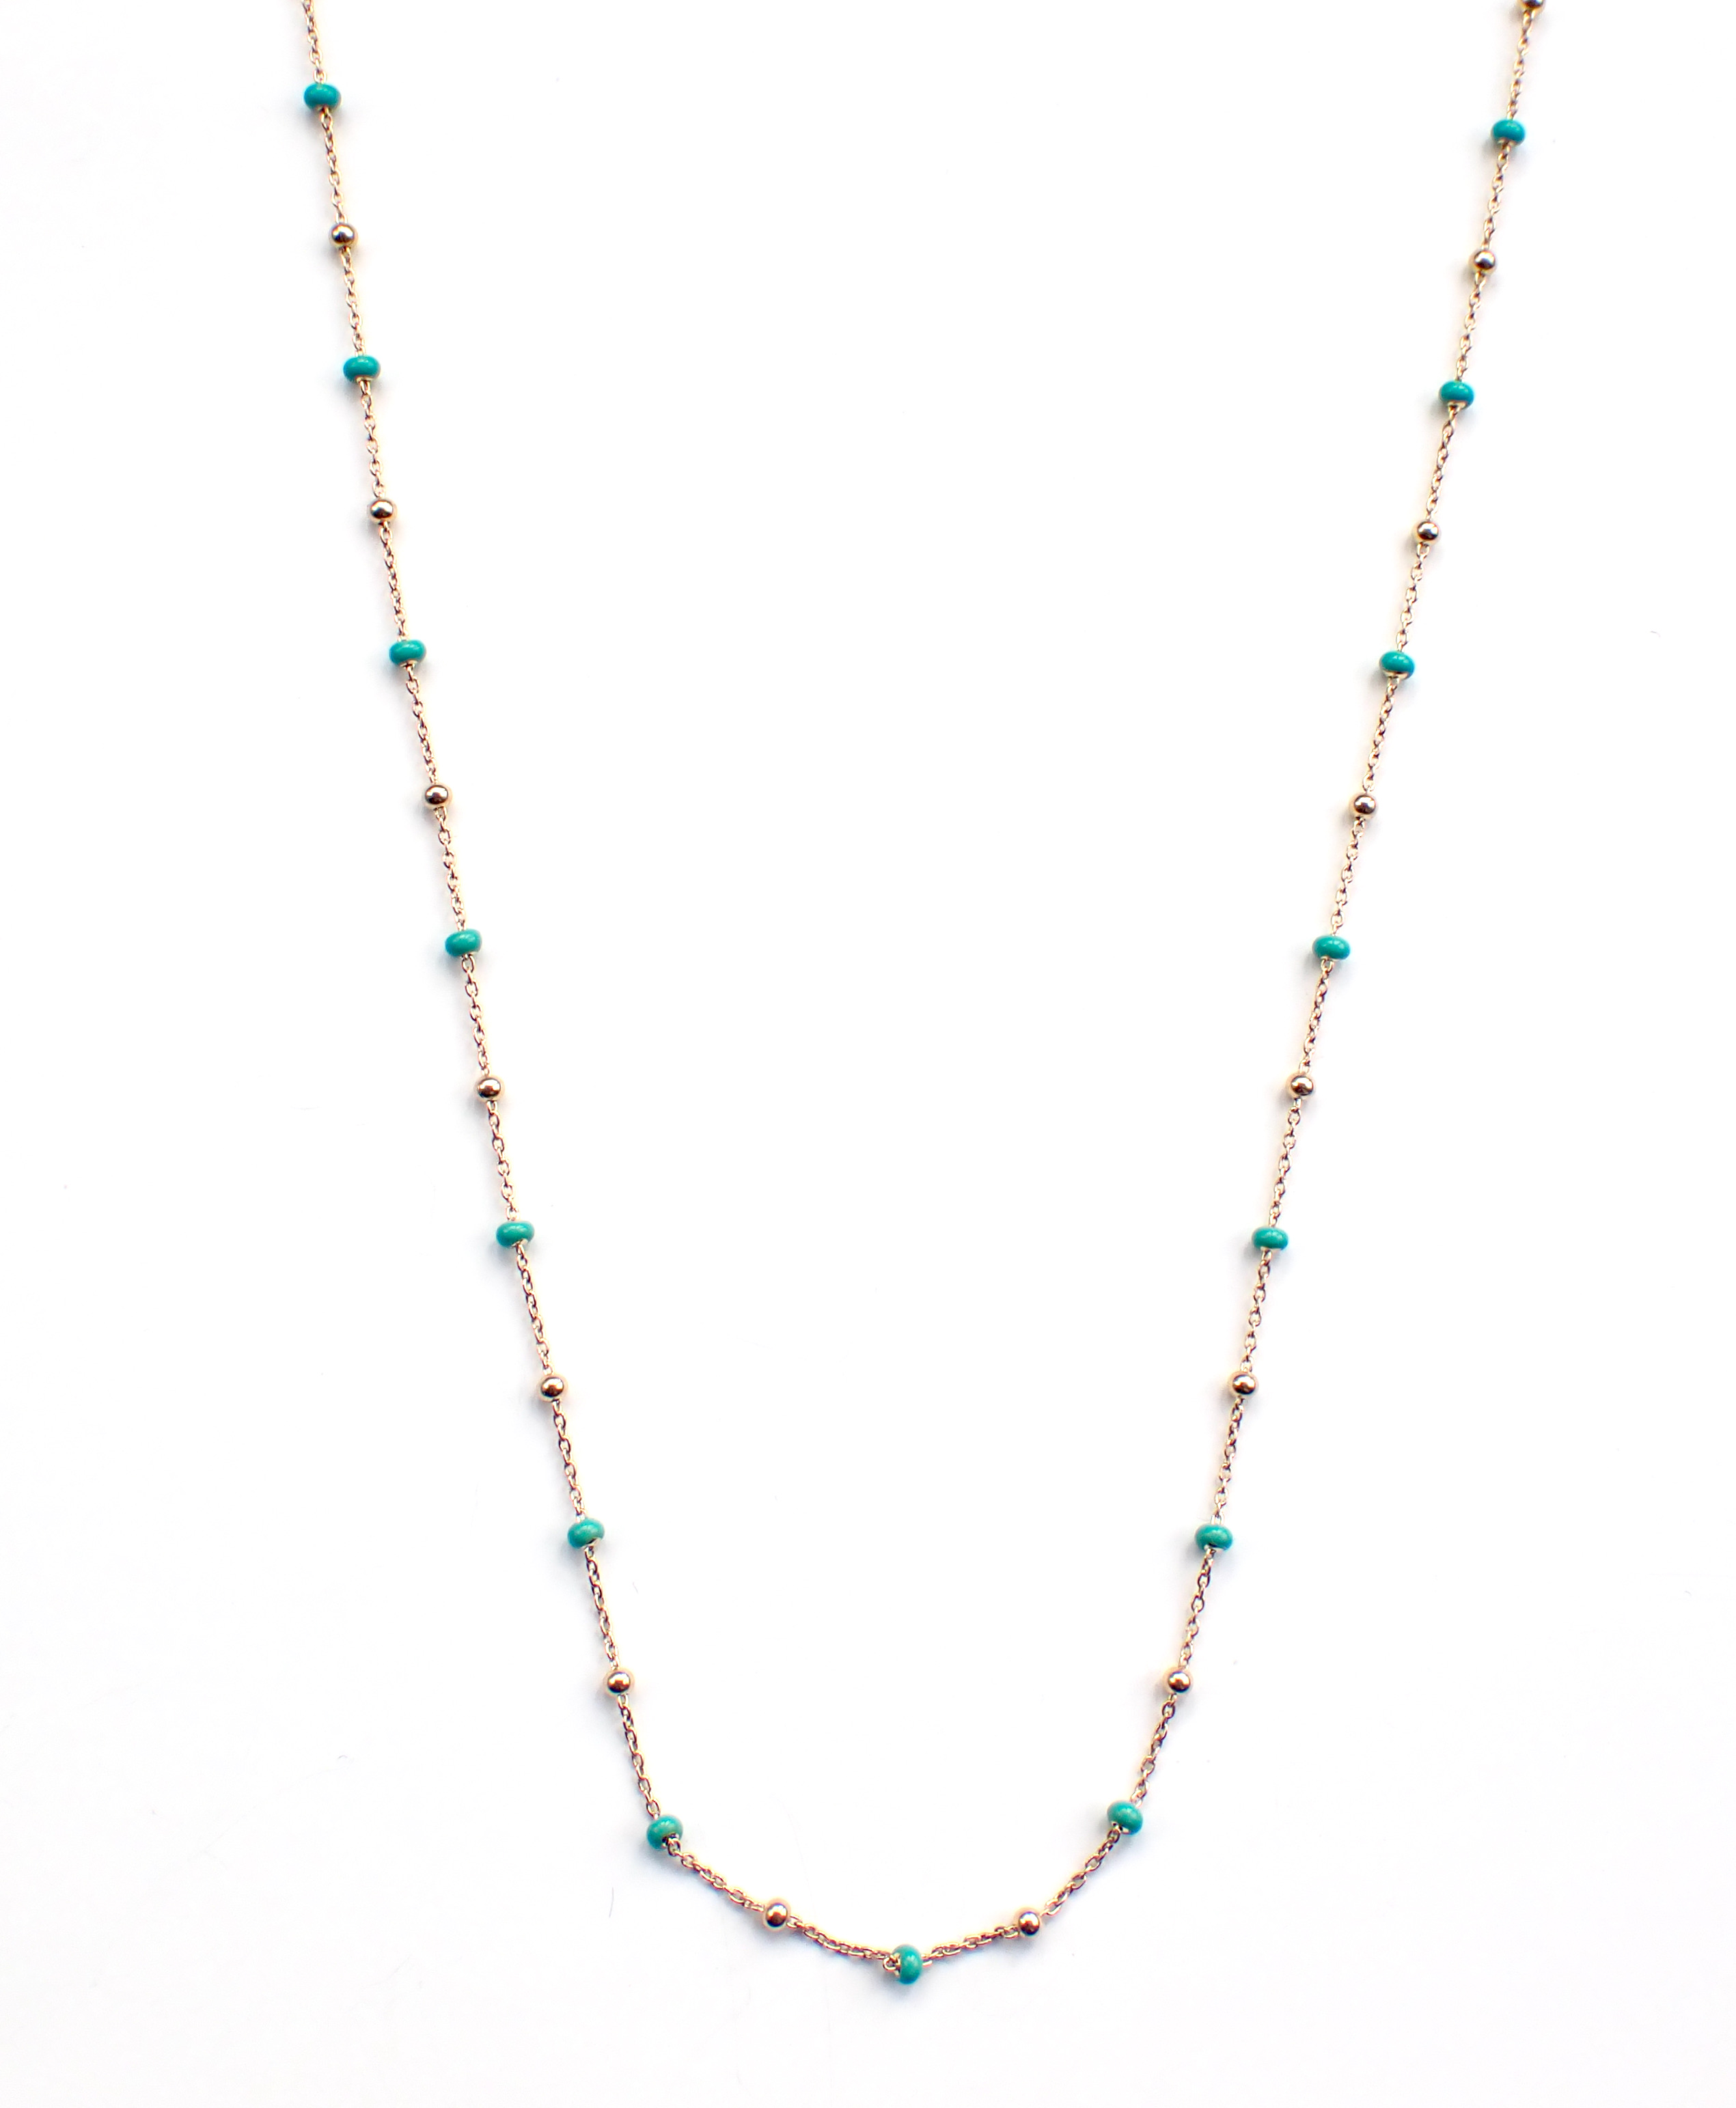 Josie Gold Turquoise Necklace